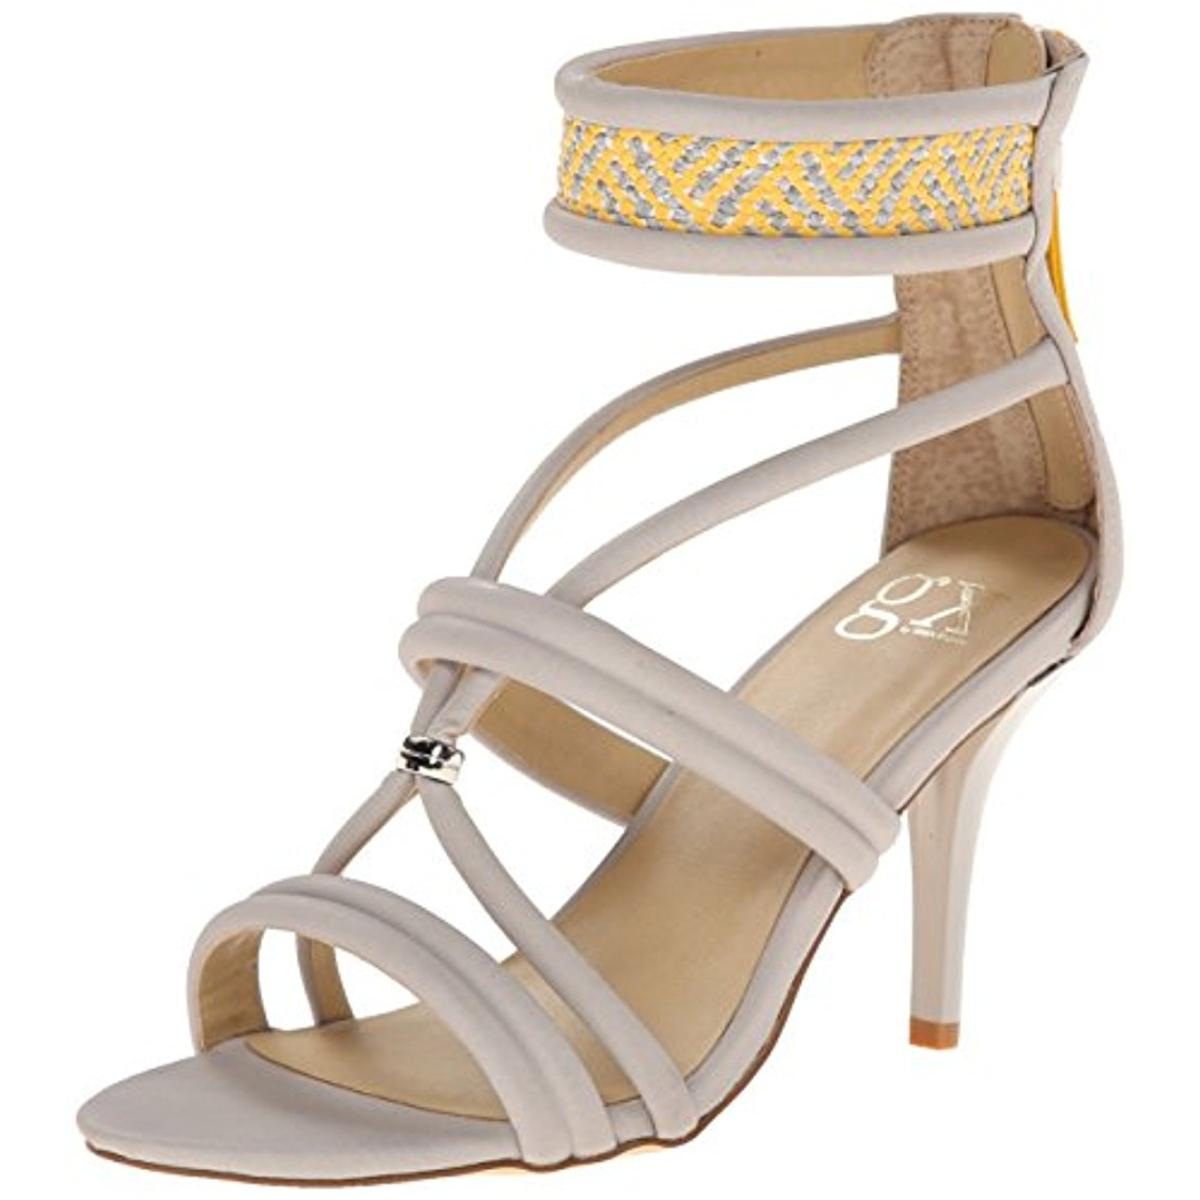 gx by Gwen Stefani Womens Adams Faux Leather Woven Dress Sandals by gx by Gwen Stefani